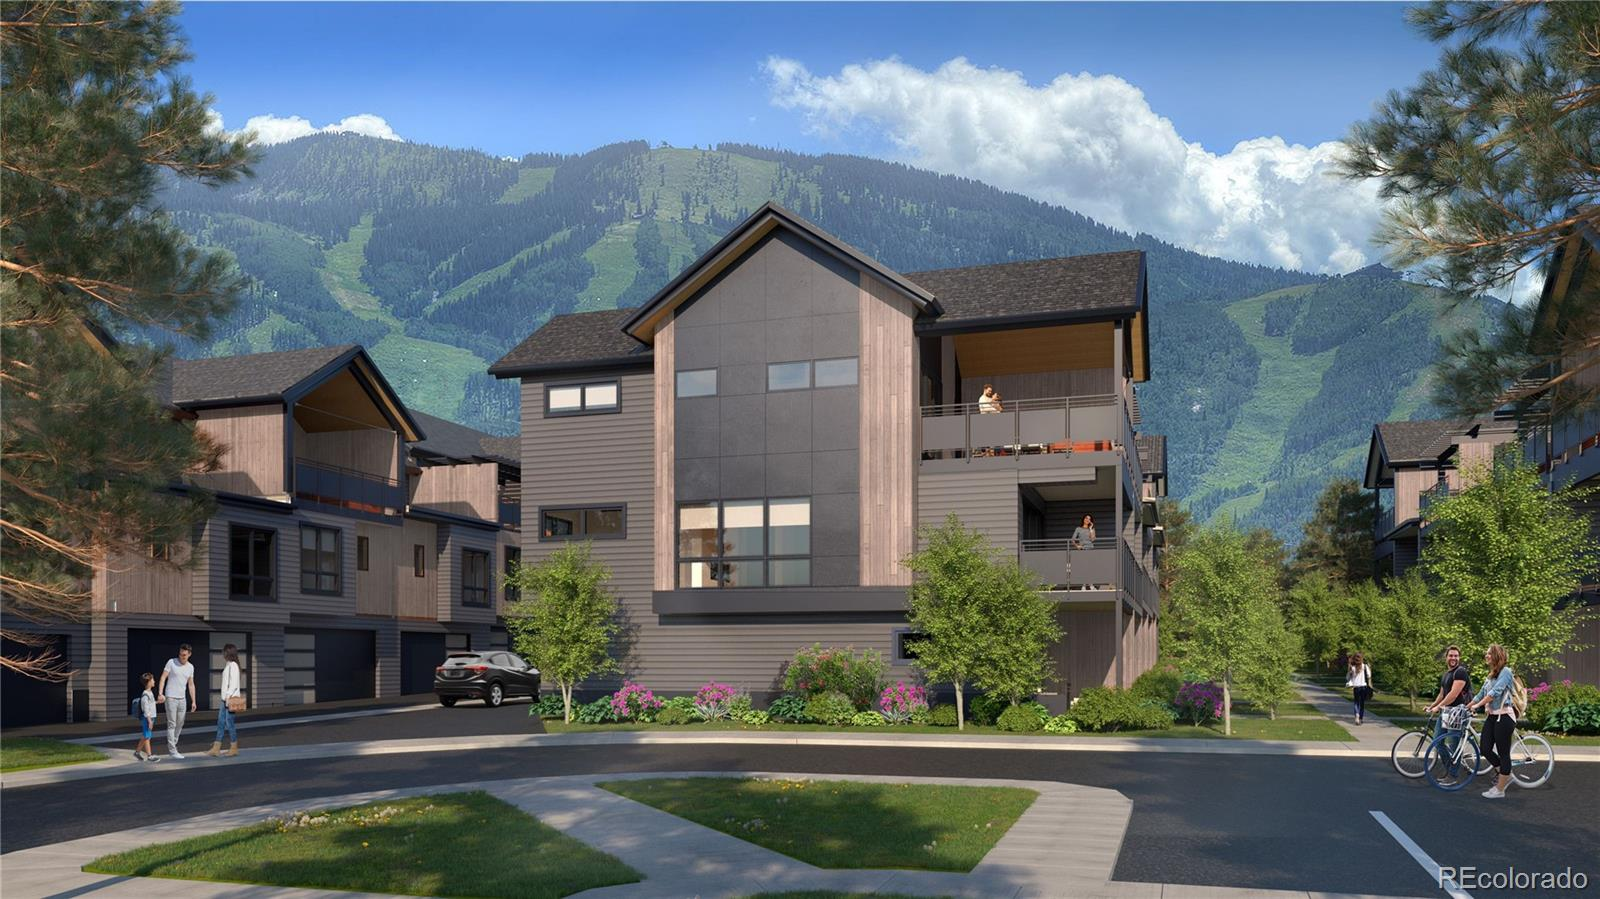 MLS# 9225270 - 2 - 2554 Cattle Kate Circle #C, Steamboat Springs, CO 80487